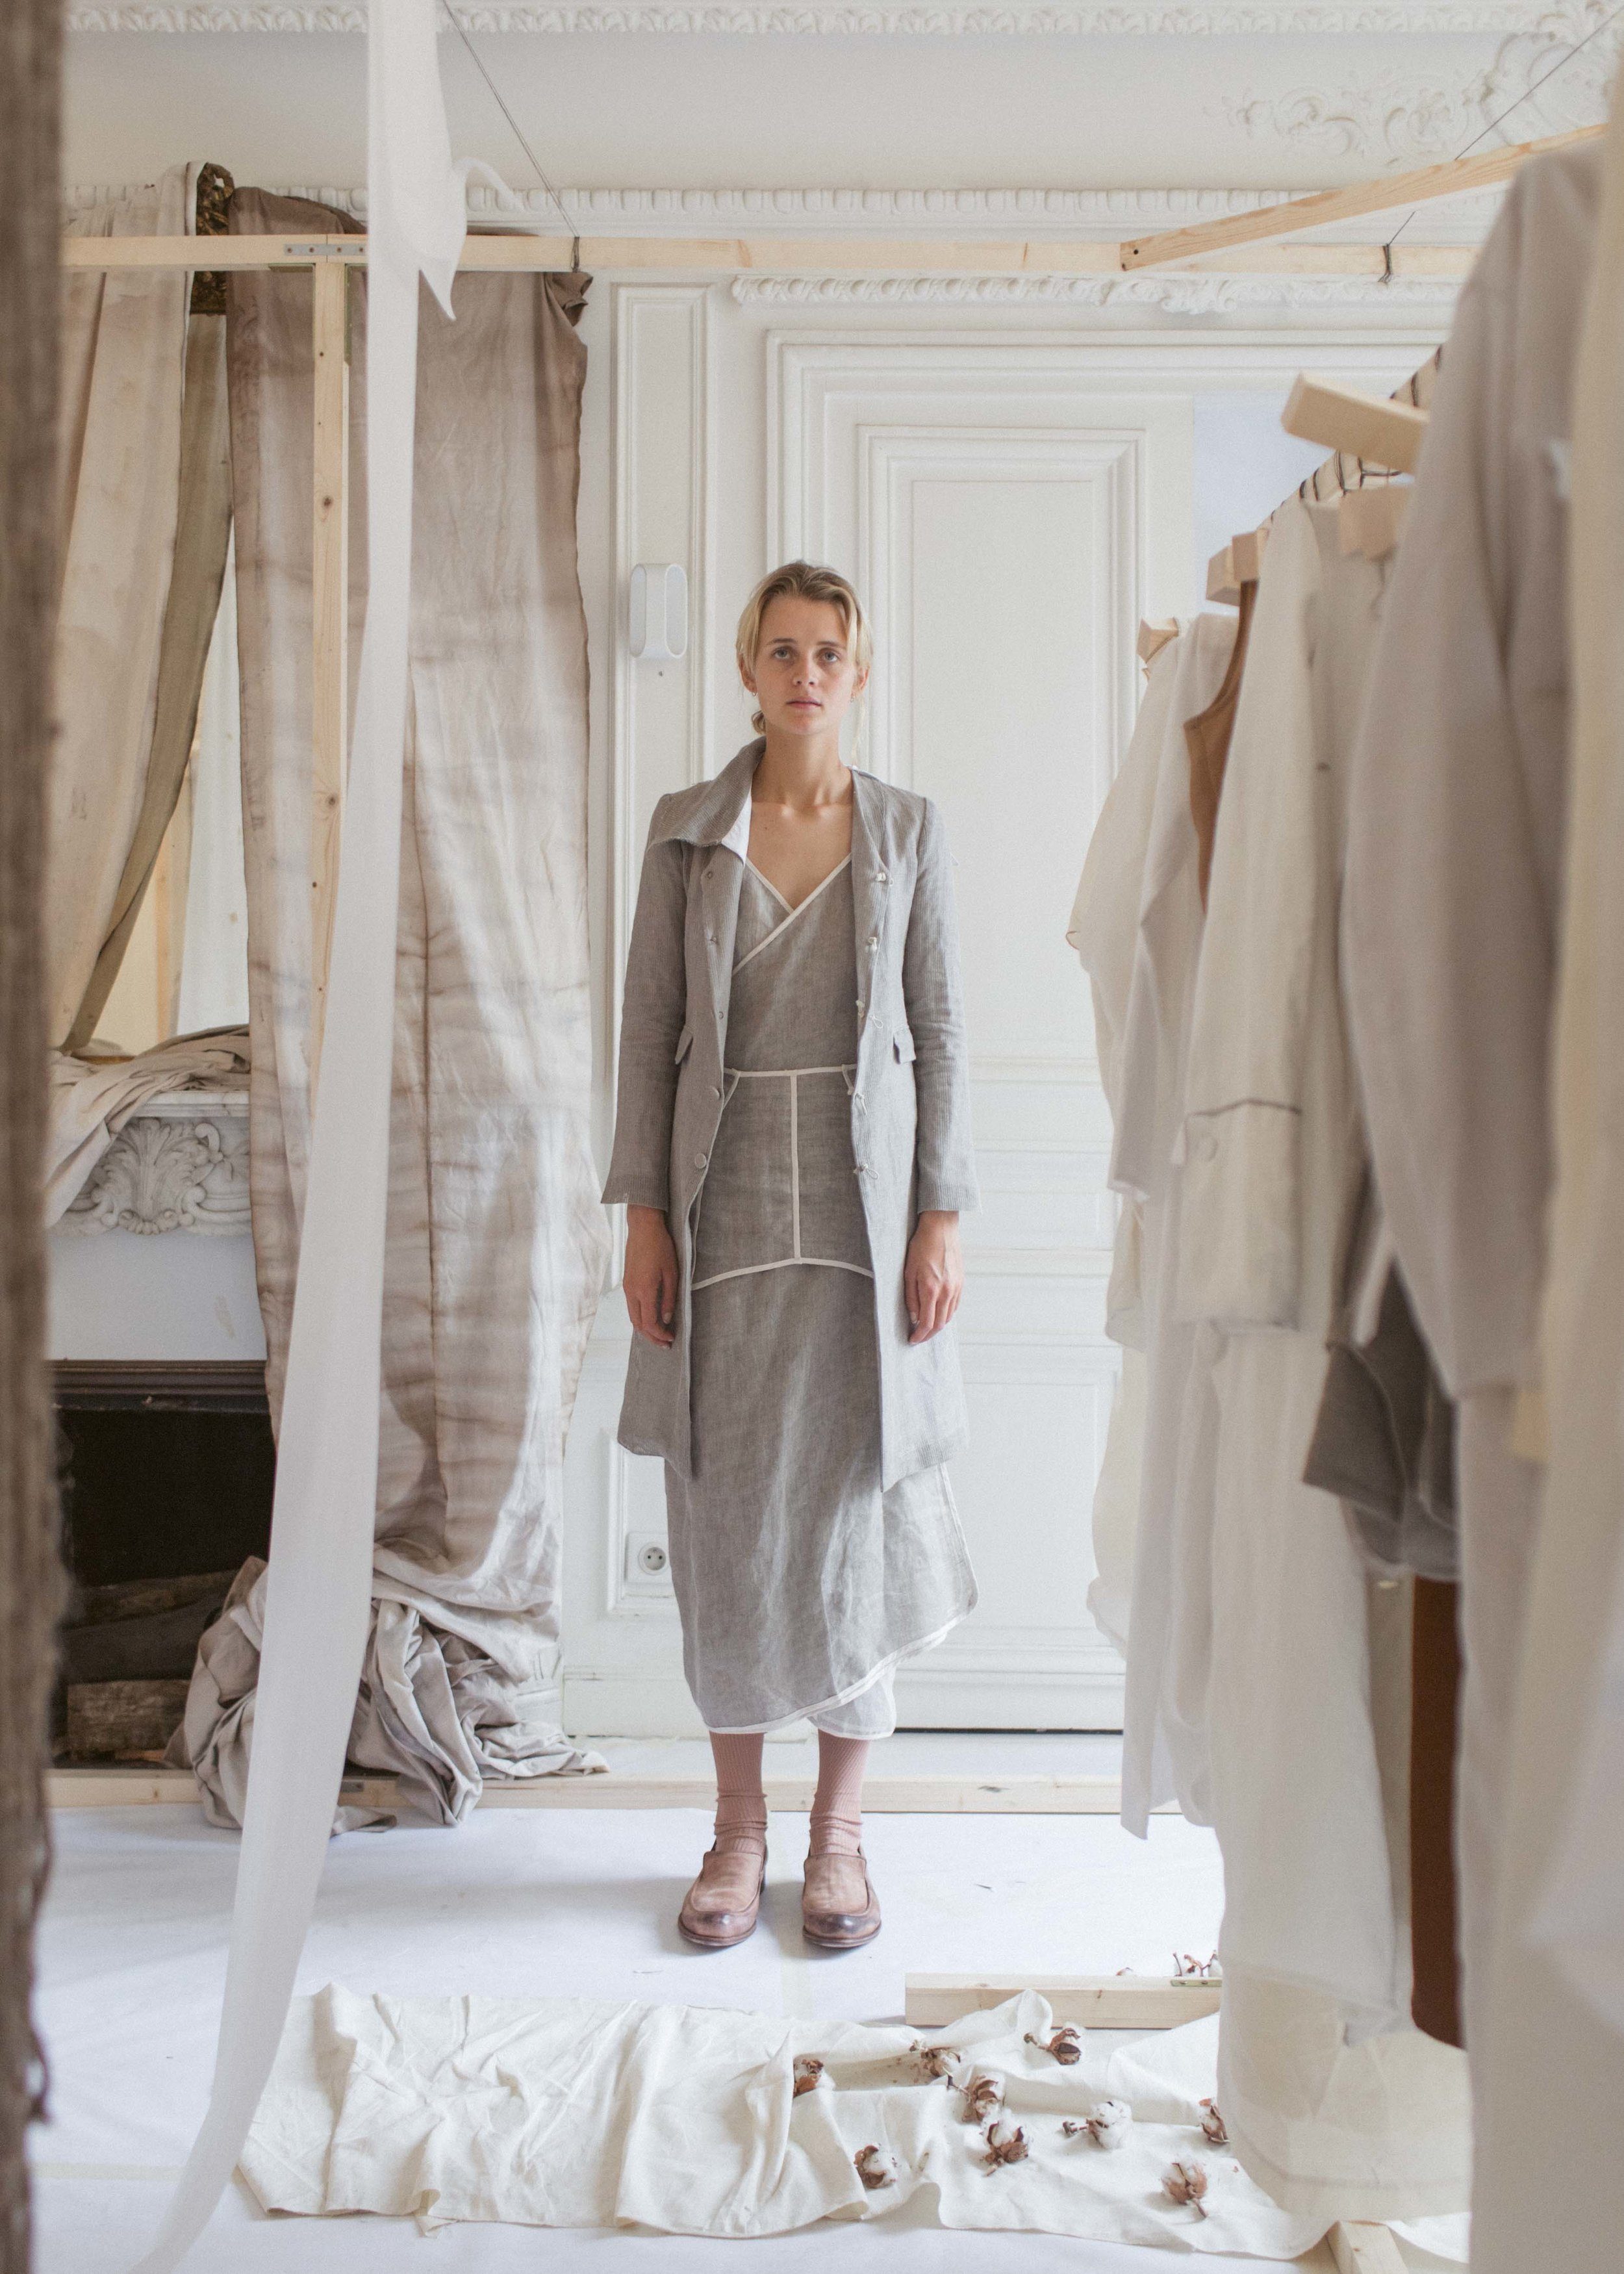 104SS18    COAT WITH REMOVABLE LINING AND COLLAR, MEDIUM LINEN MESH, GREY     99SS18    TWO PIECE DRESS, LIGHT LINEN MESH, GREY